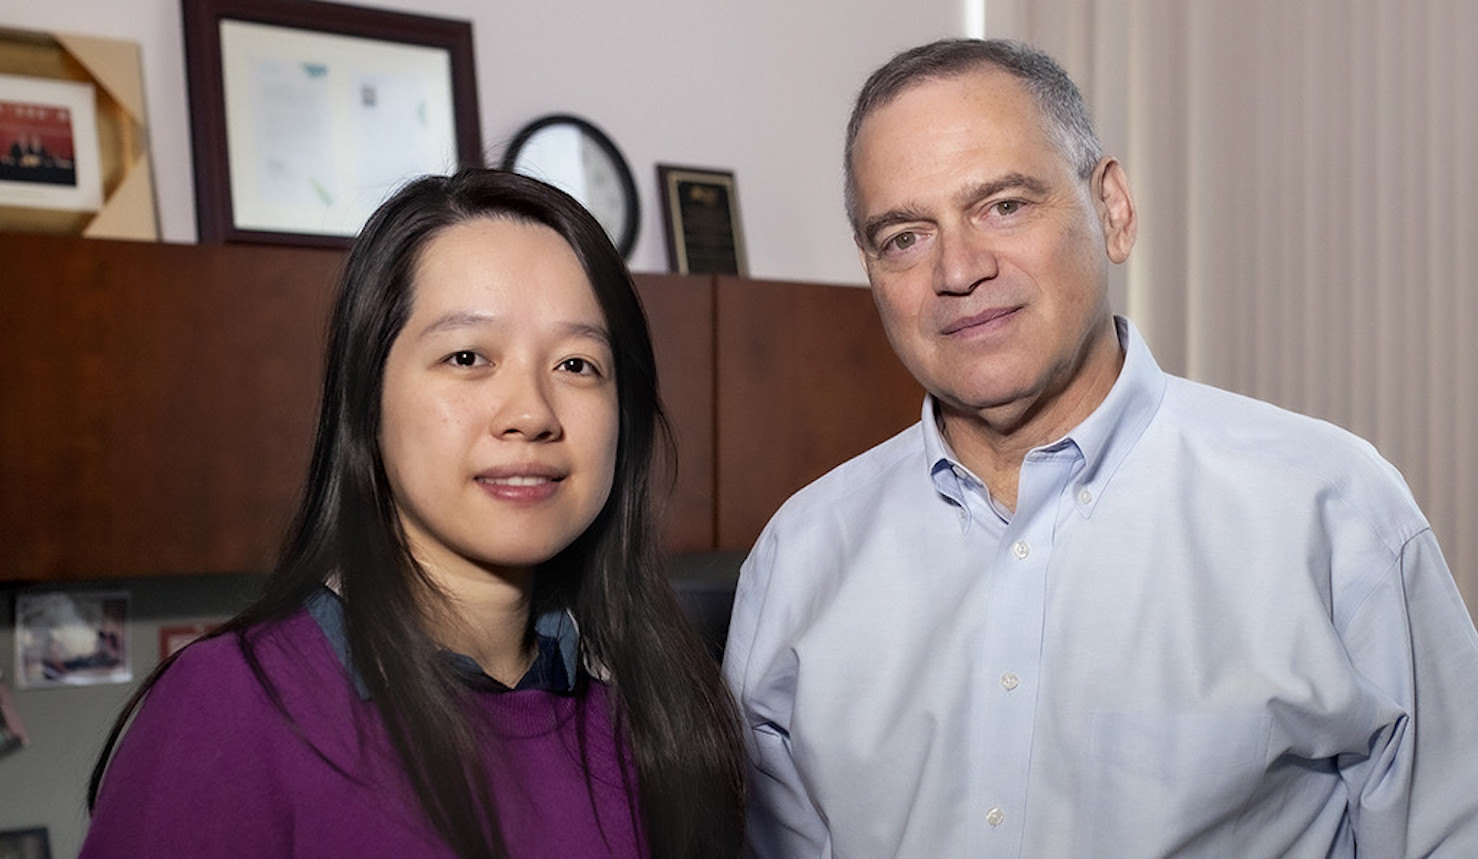 Chenxi Huang (left), first author of a new study in JAMA Network Open, and Harlan Krumholz, the study's senior author and director of the Yale Center for Outcomes Research and Evaluation